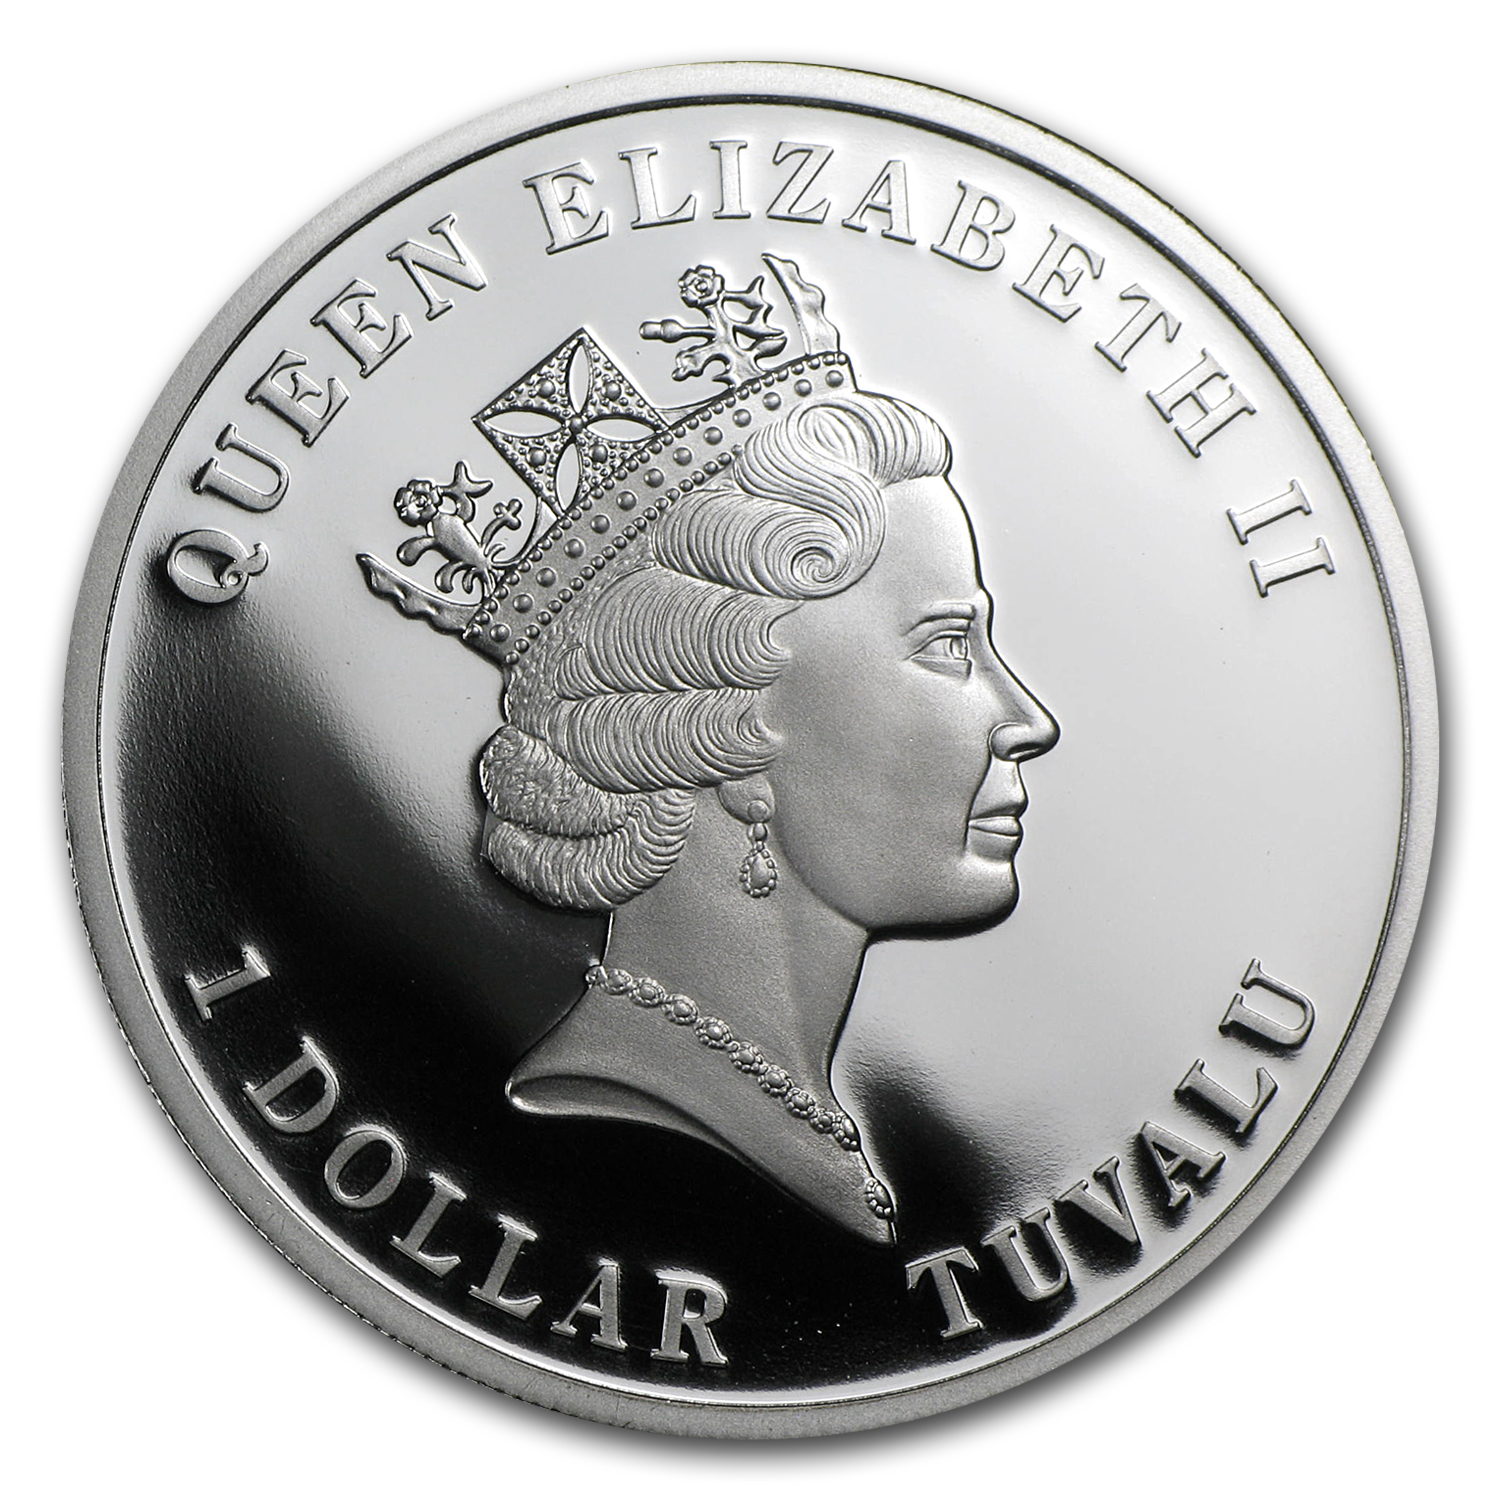 2011 Tuvalu Proof Silver $1 Coral Protection Pillar Coral